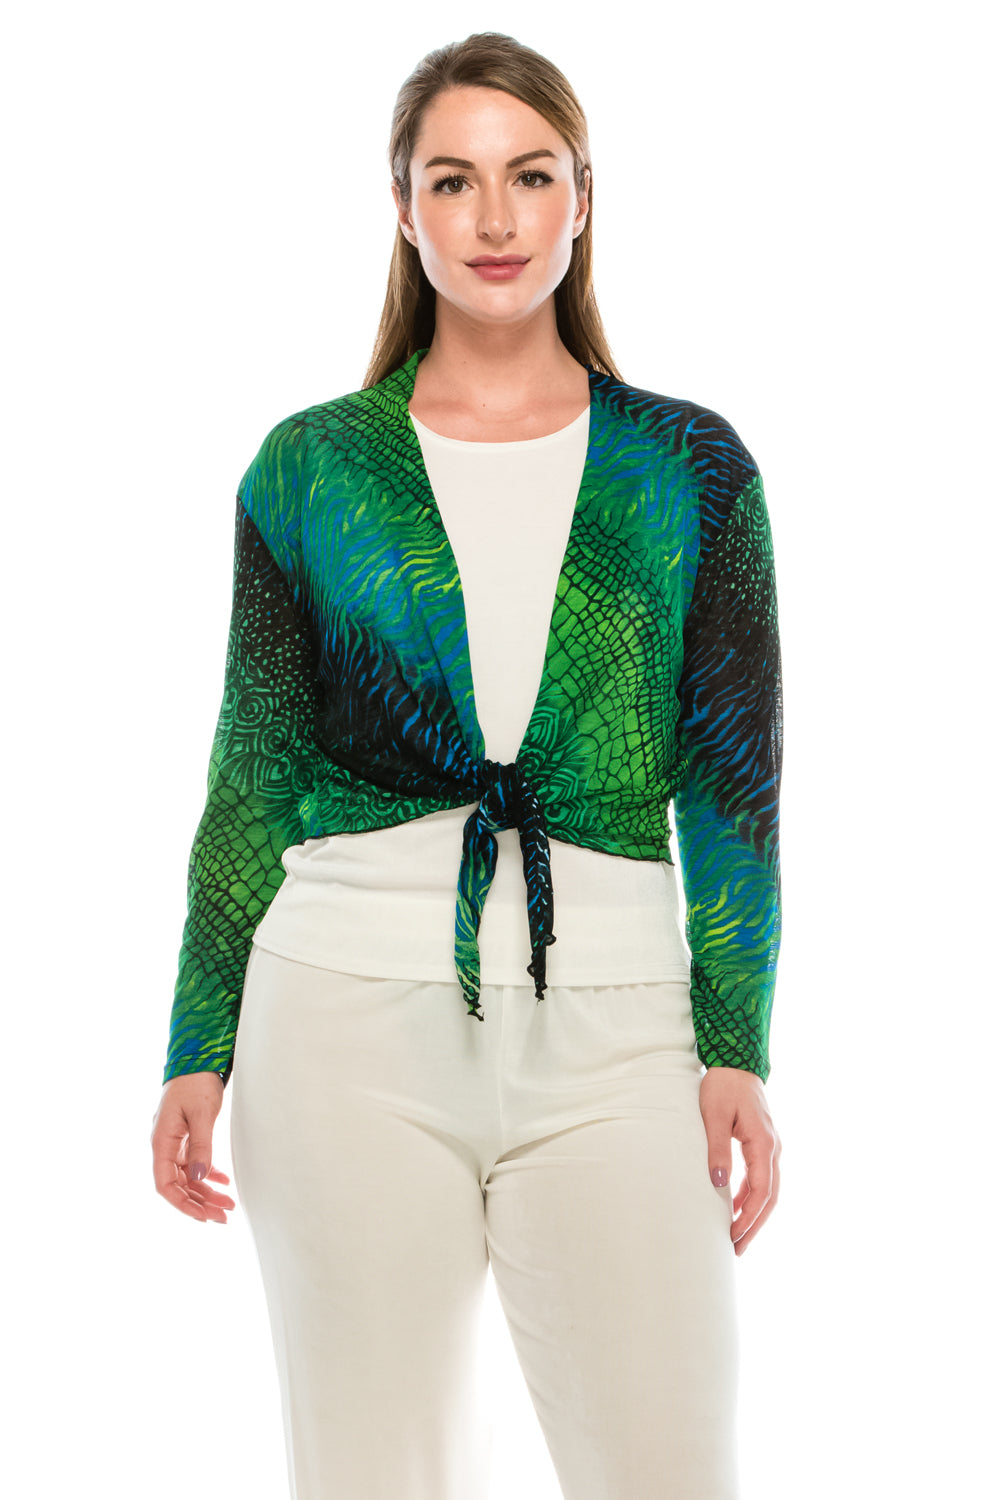 Jostar Women's Onion Skin Long Sleeve Bolero Long Sleeve Print, 422SK-LP-W182 - Jostar Online